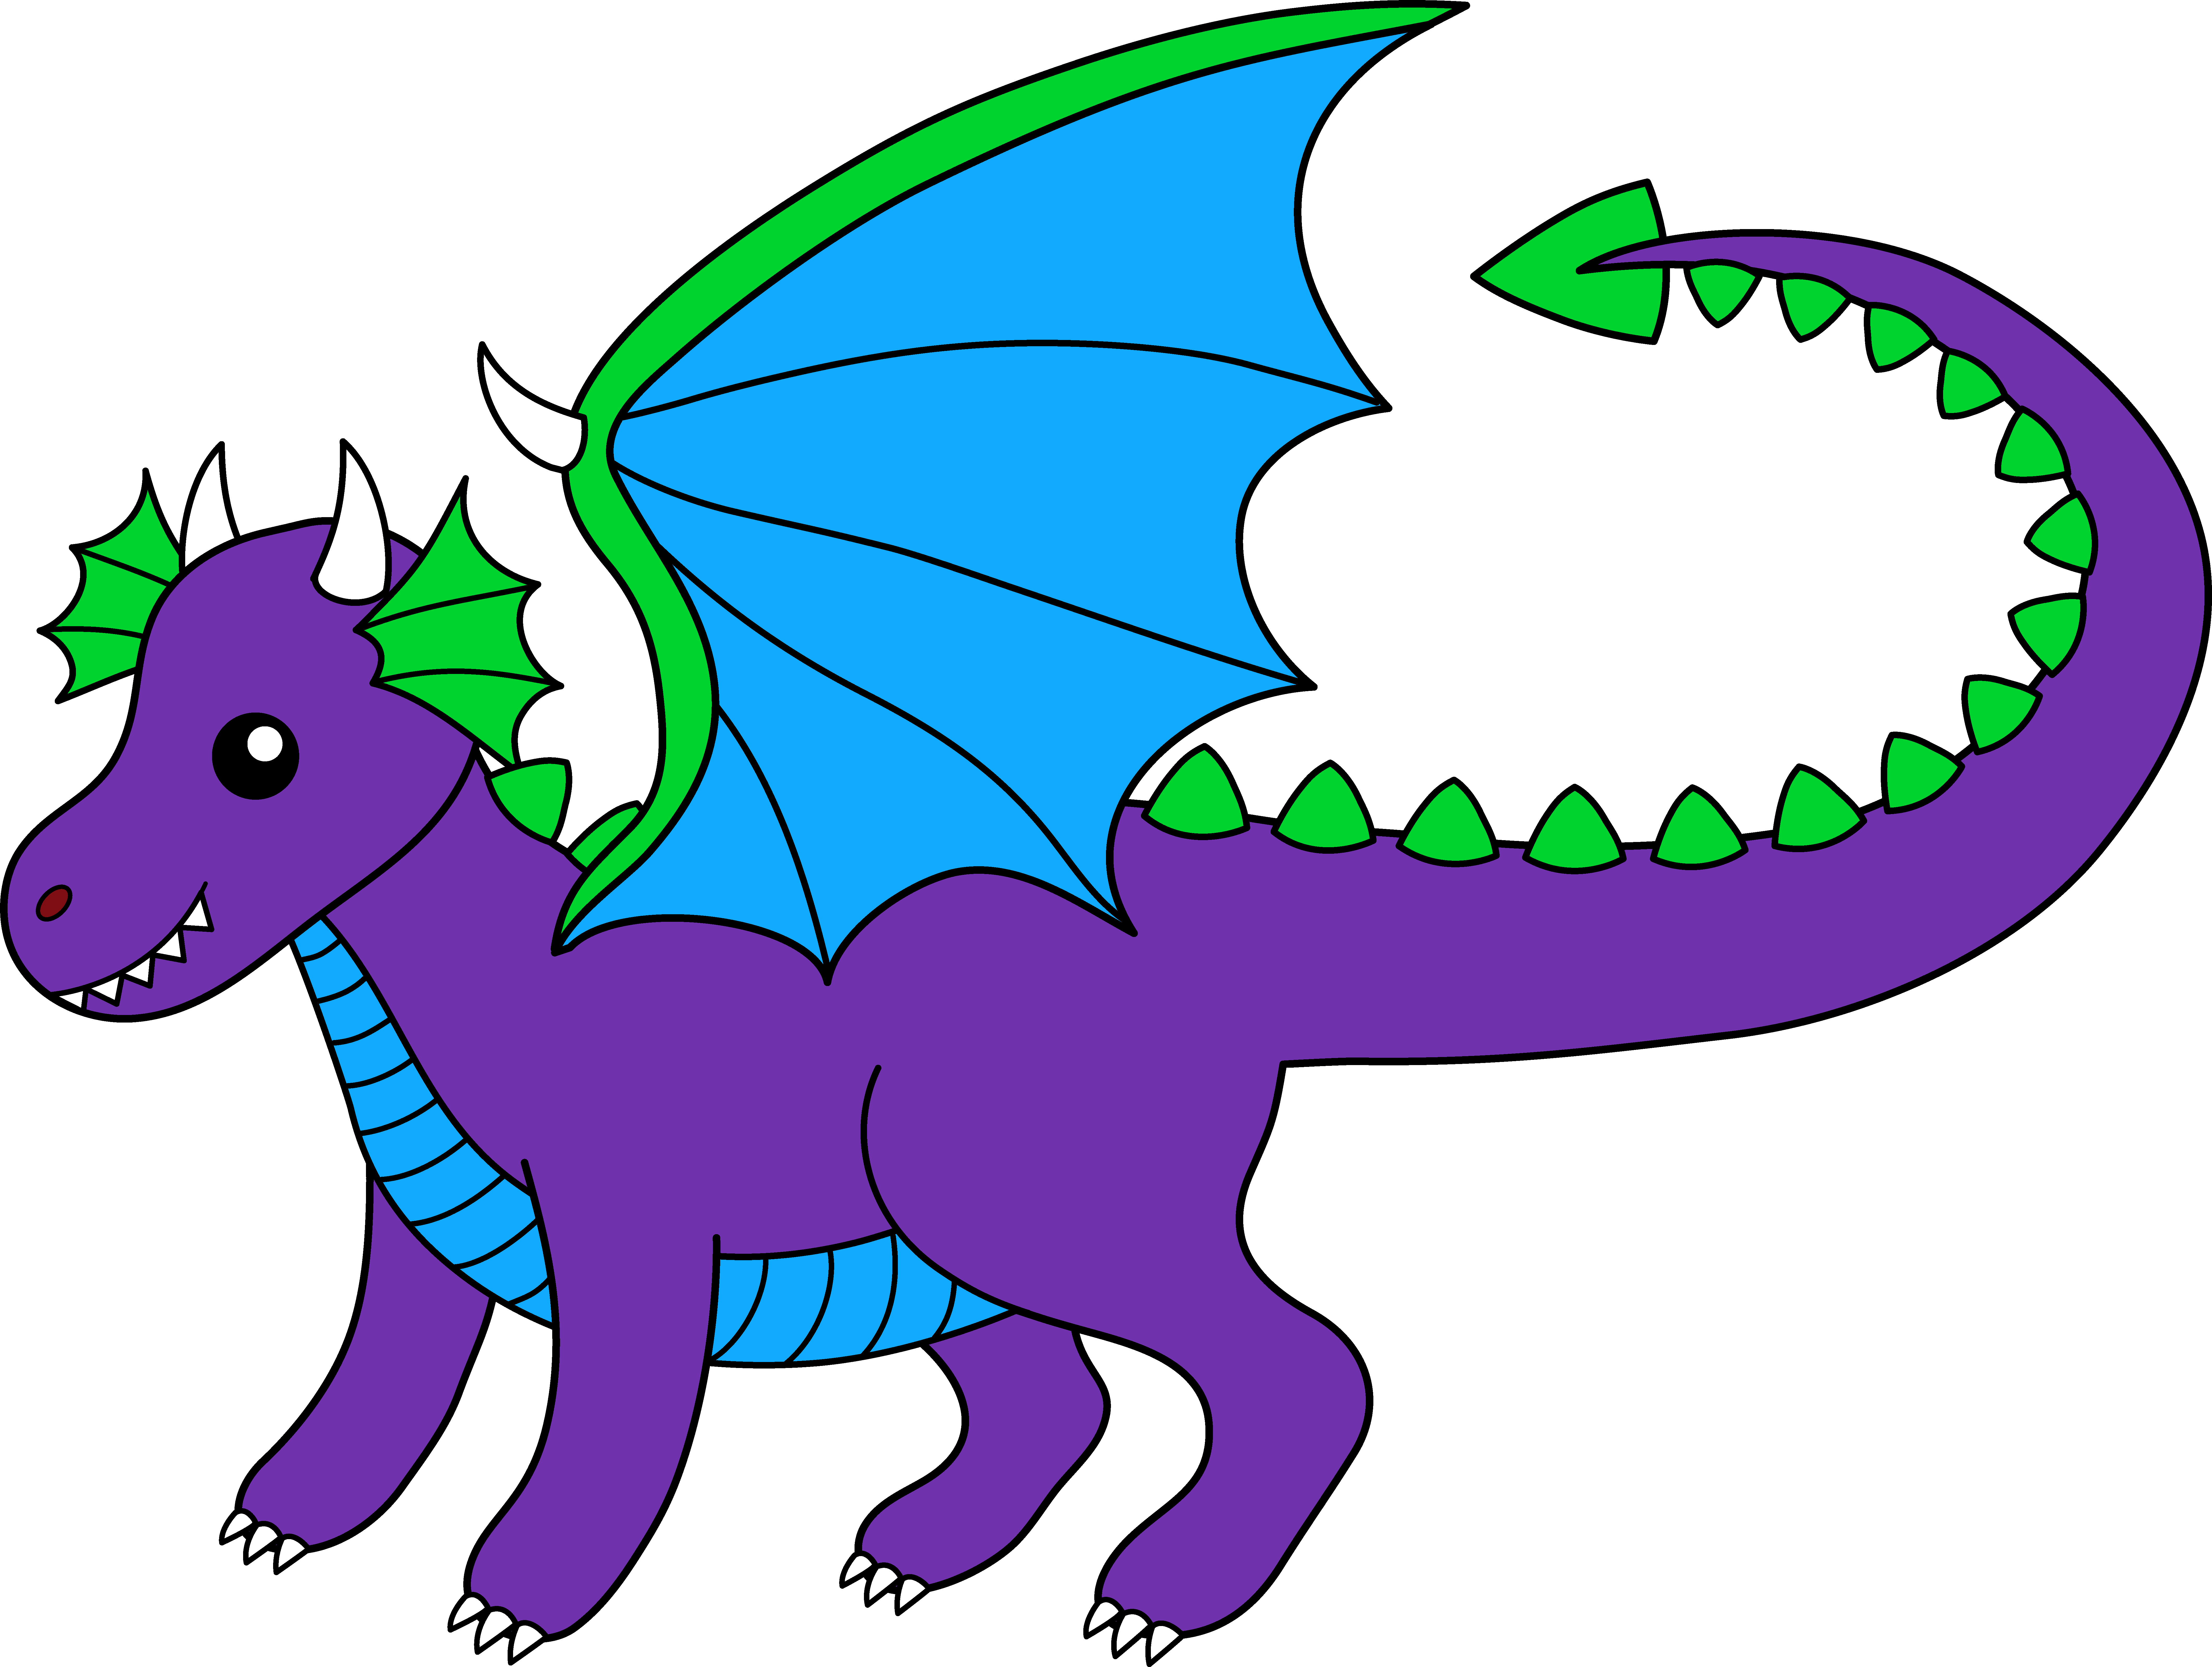 Dragon Clip Art | Clipart library - Free Clipart Images